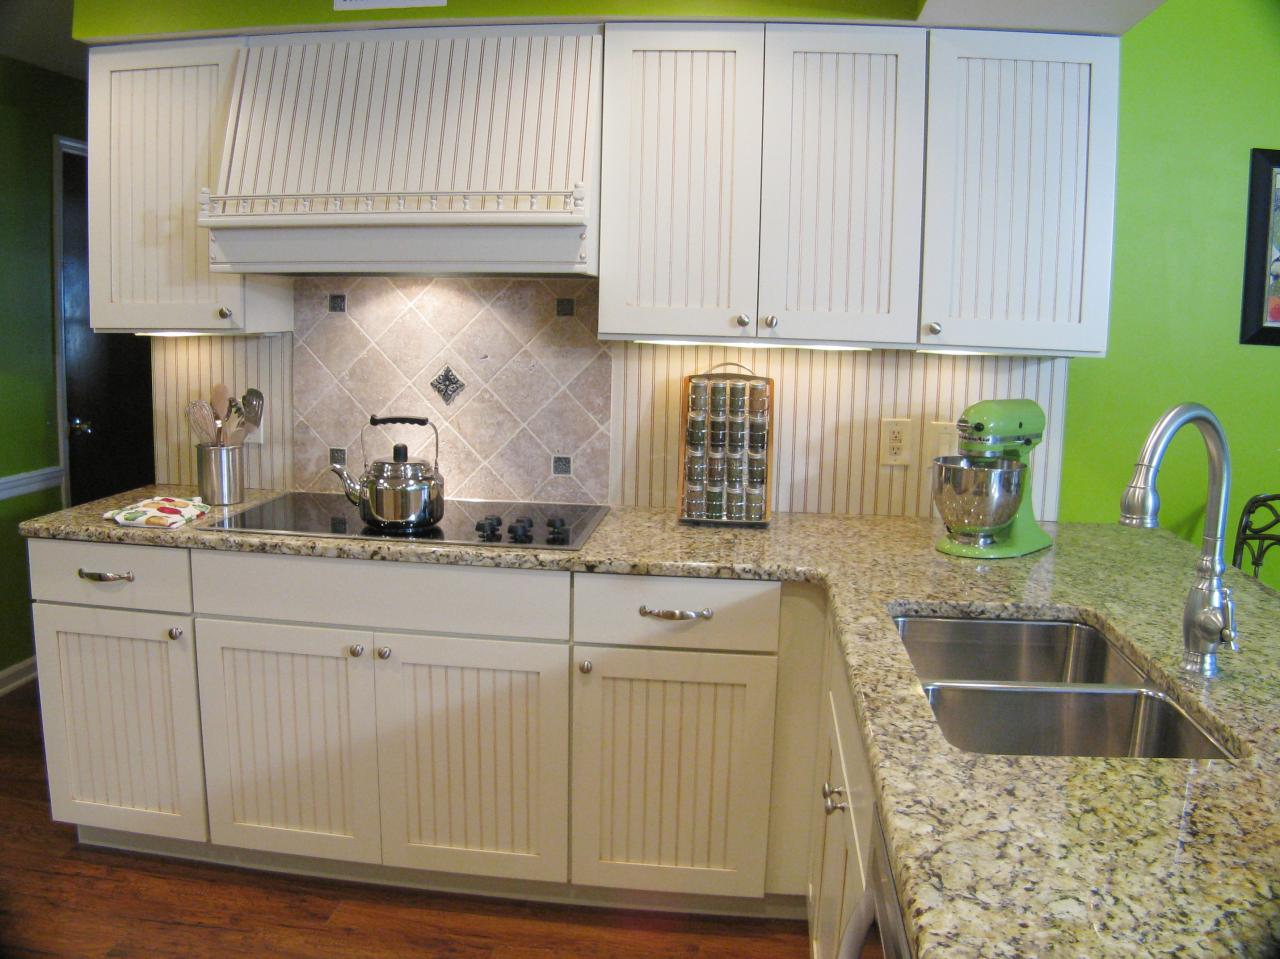 Decor Ideas country kitchen cabinets cottage chic qsciytj